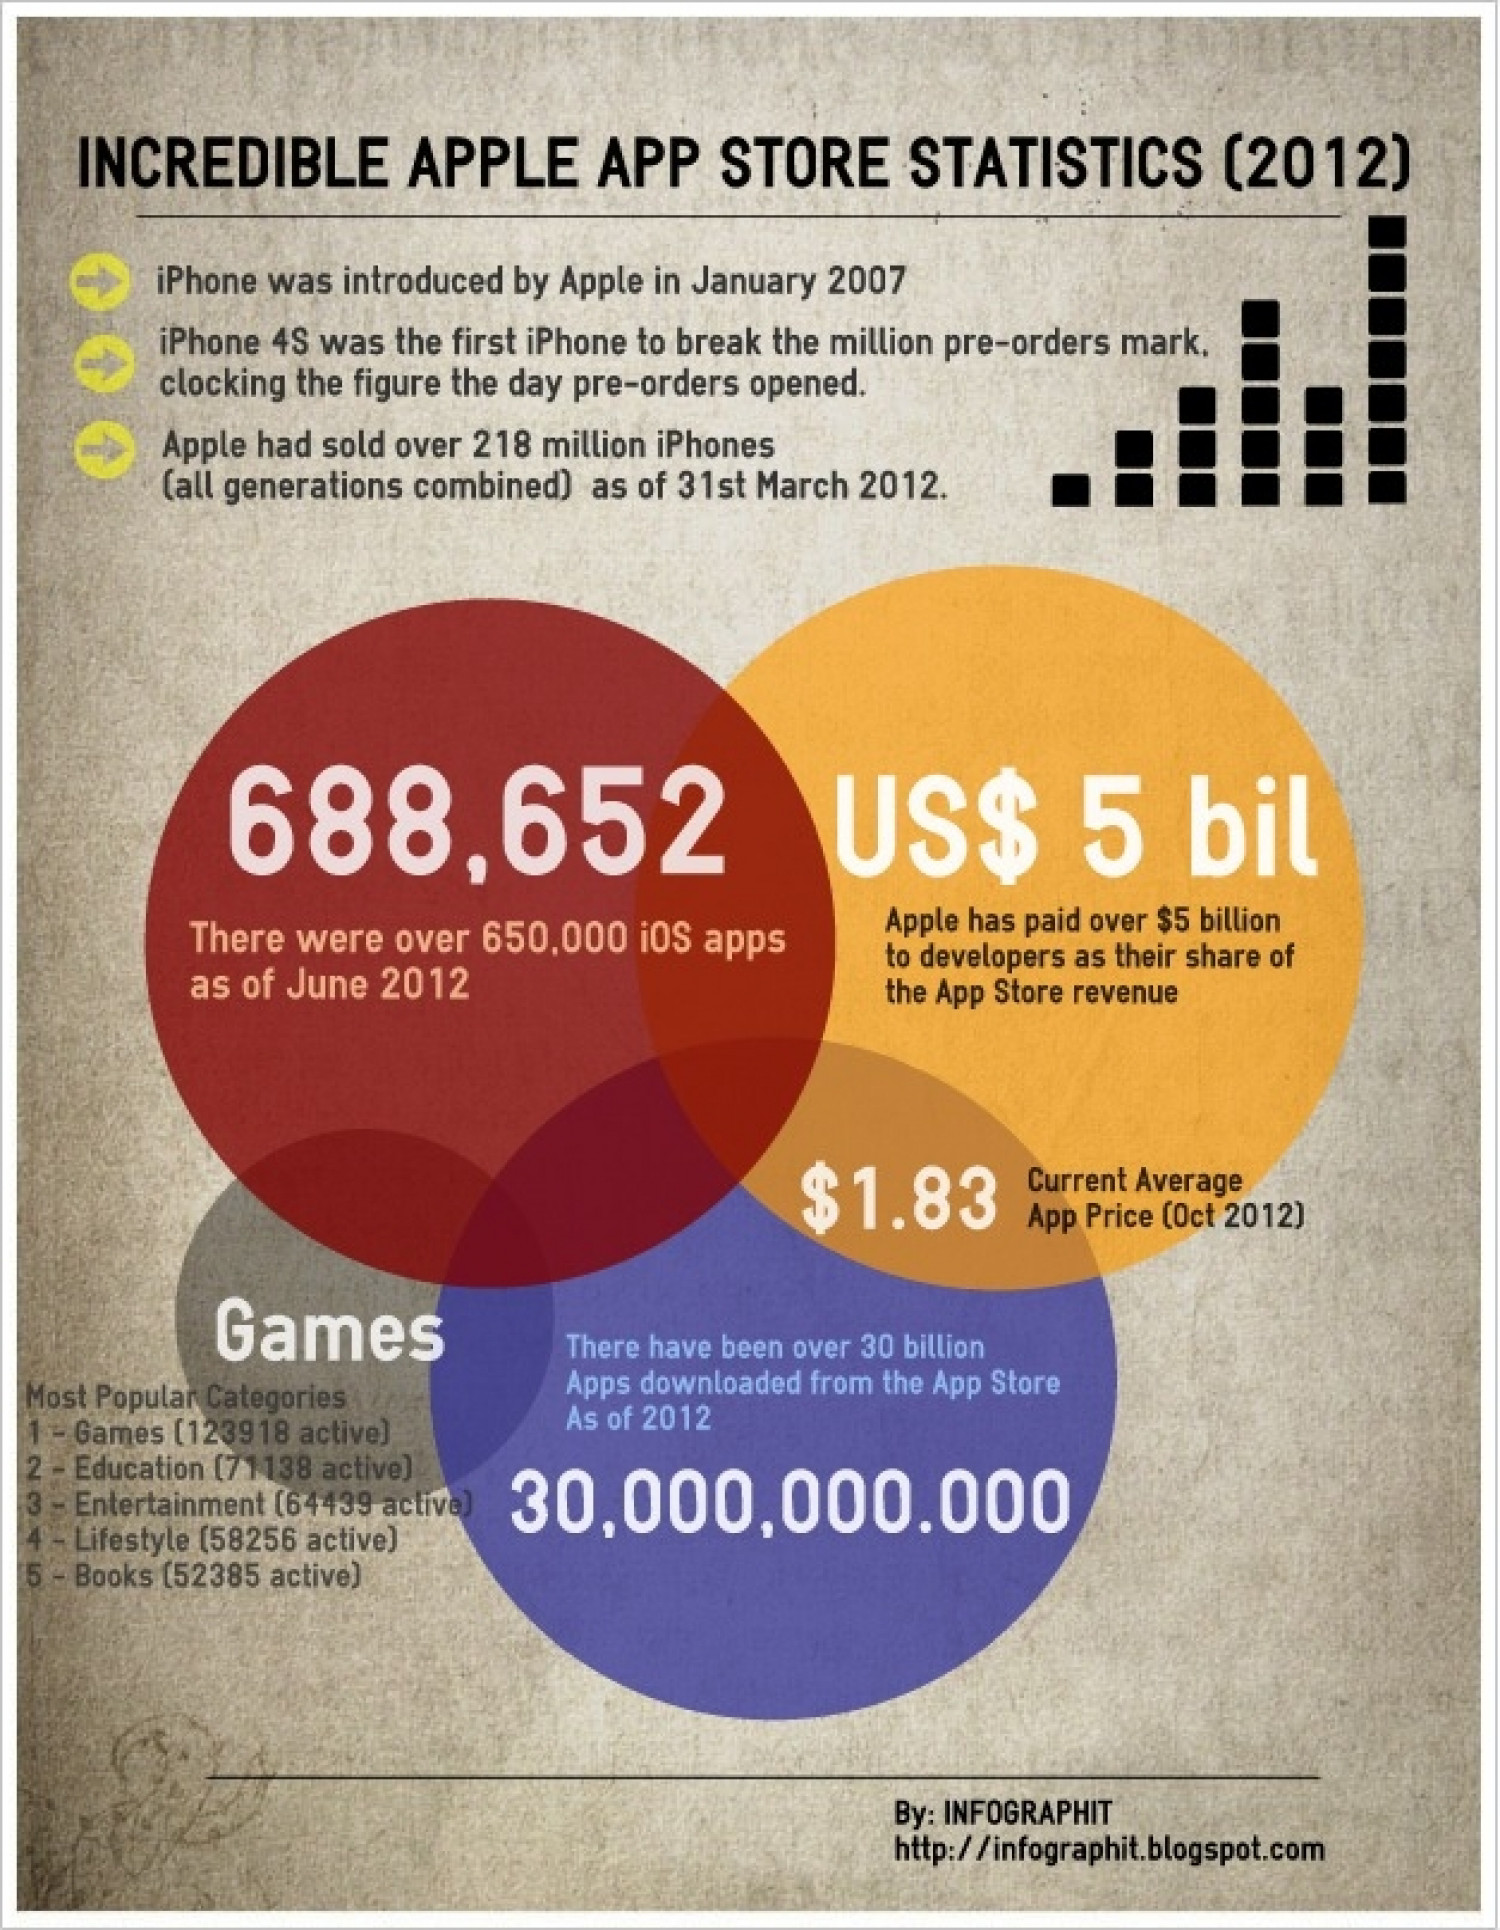 Incredible Apple App Store Statistics (2012) Infographic